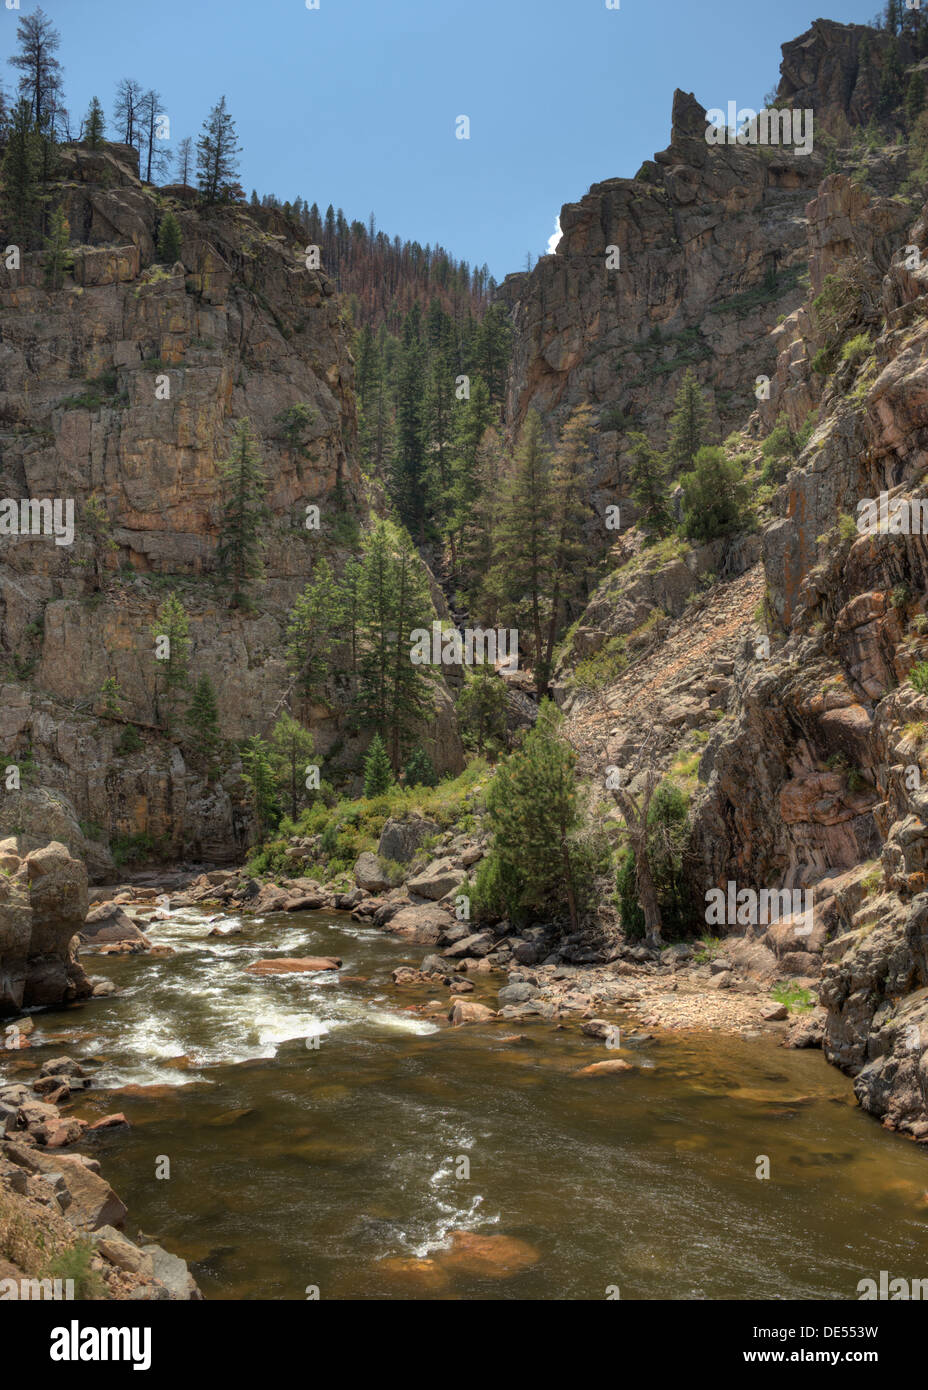 Northern Colorado's Cache La Poudre river and canyon at Poverty Gulch. - Stock Image